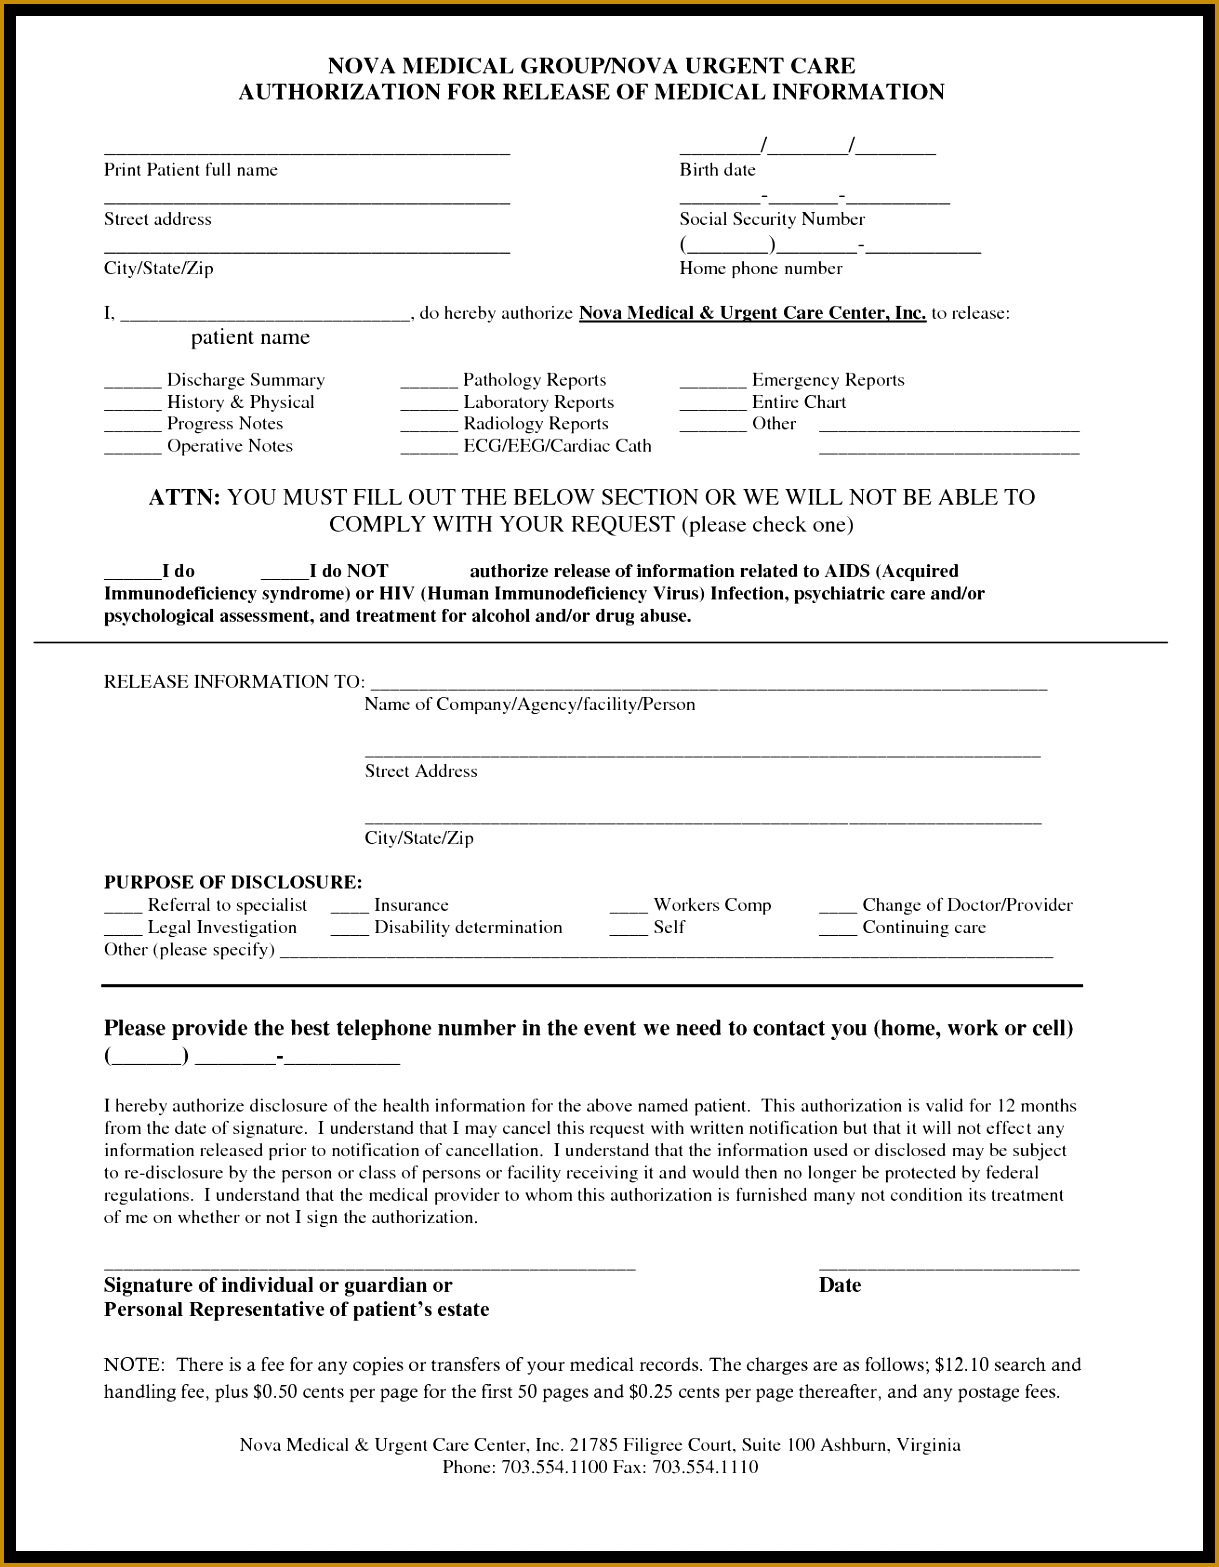 Blank Medical Forms Similiar Printable Physician Forms Keywords Medical Release Form Free Forms 15671219